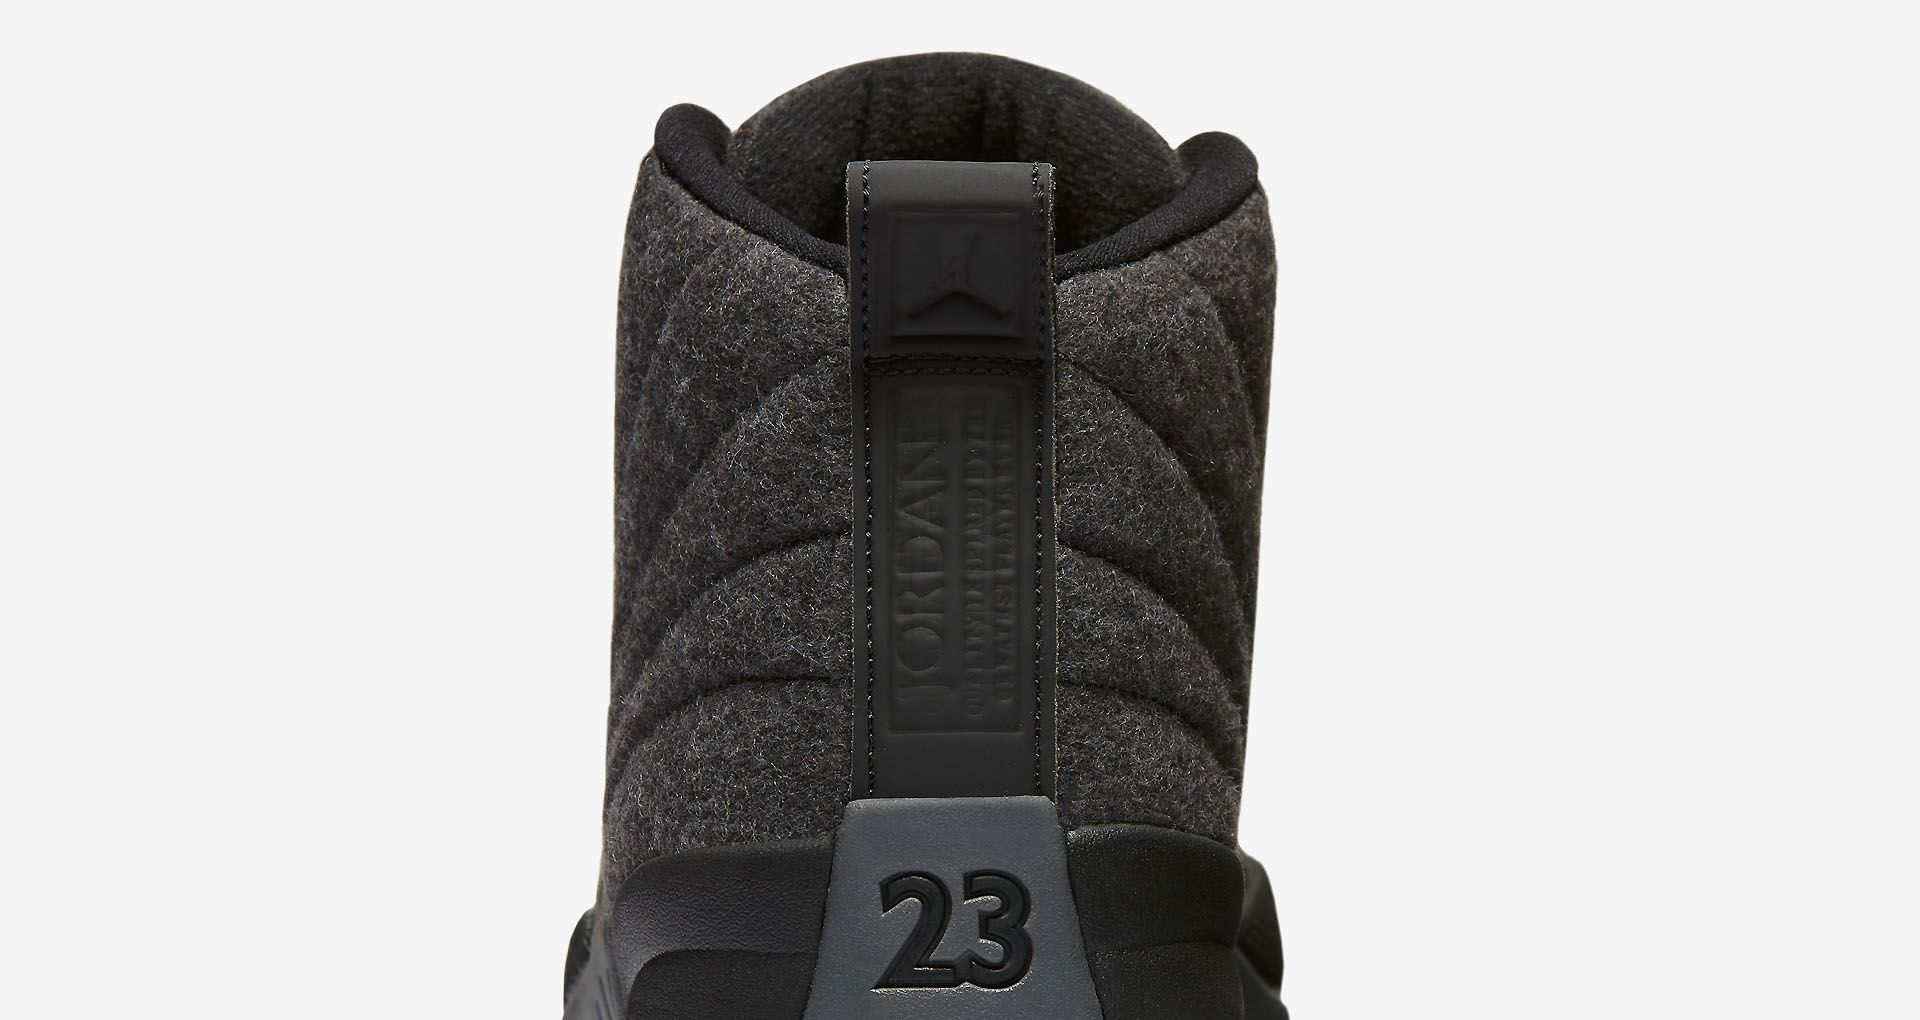 00400b0b5a8c47 Air Jordan 12 Retro Wool  Dark Grey   Black  Release Date. Nike⁠+ SNKRS